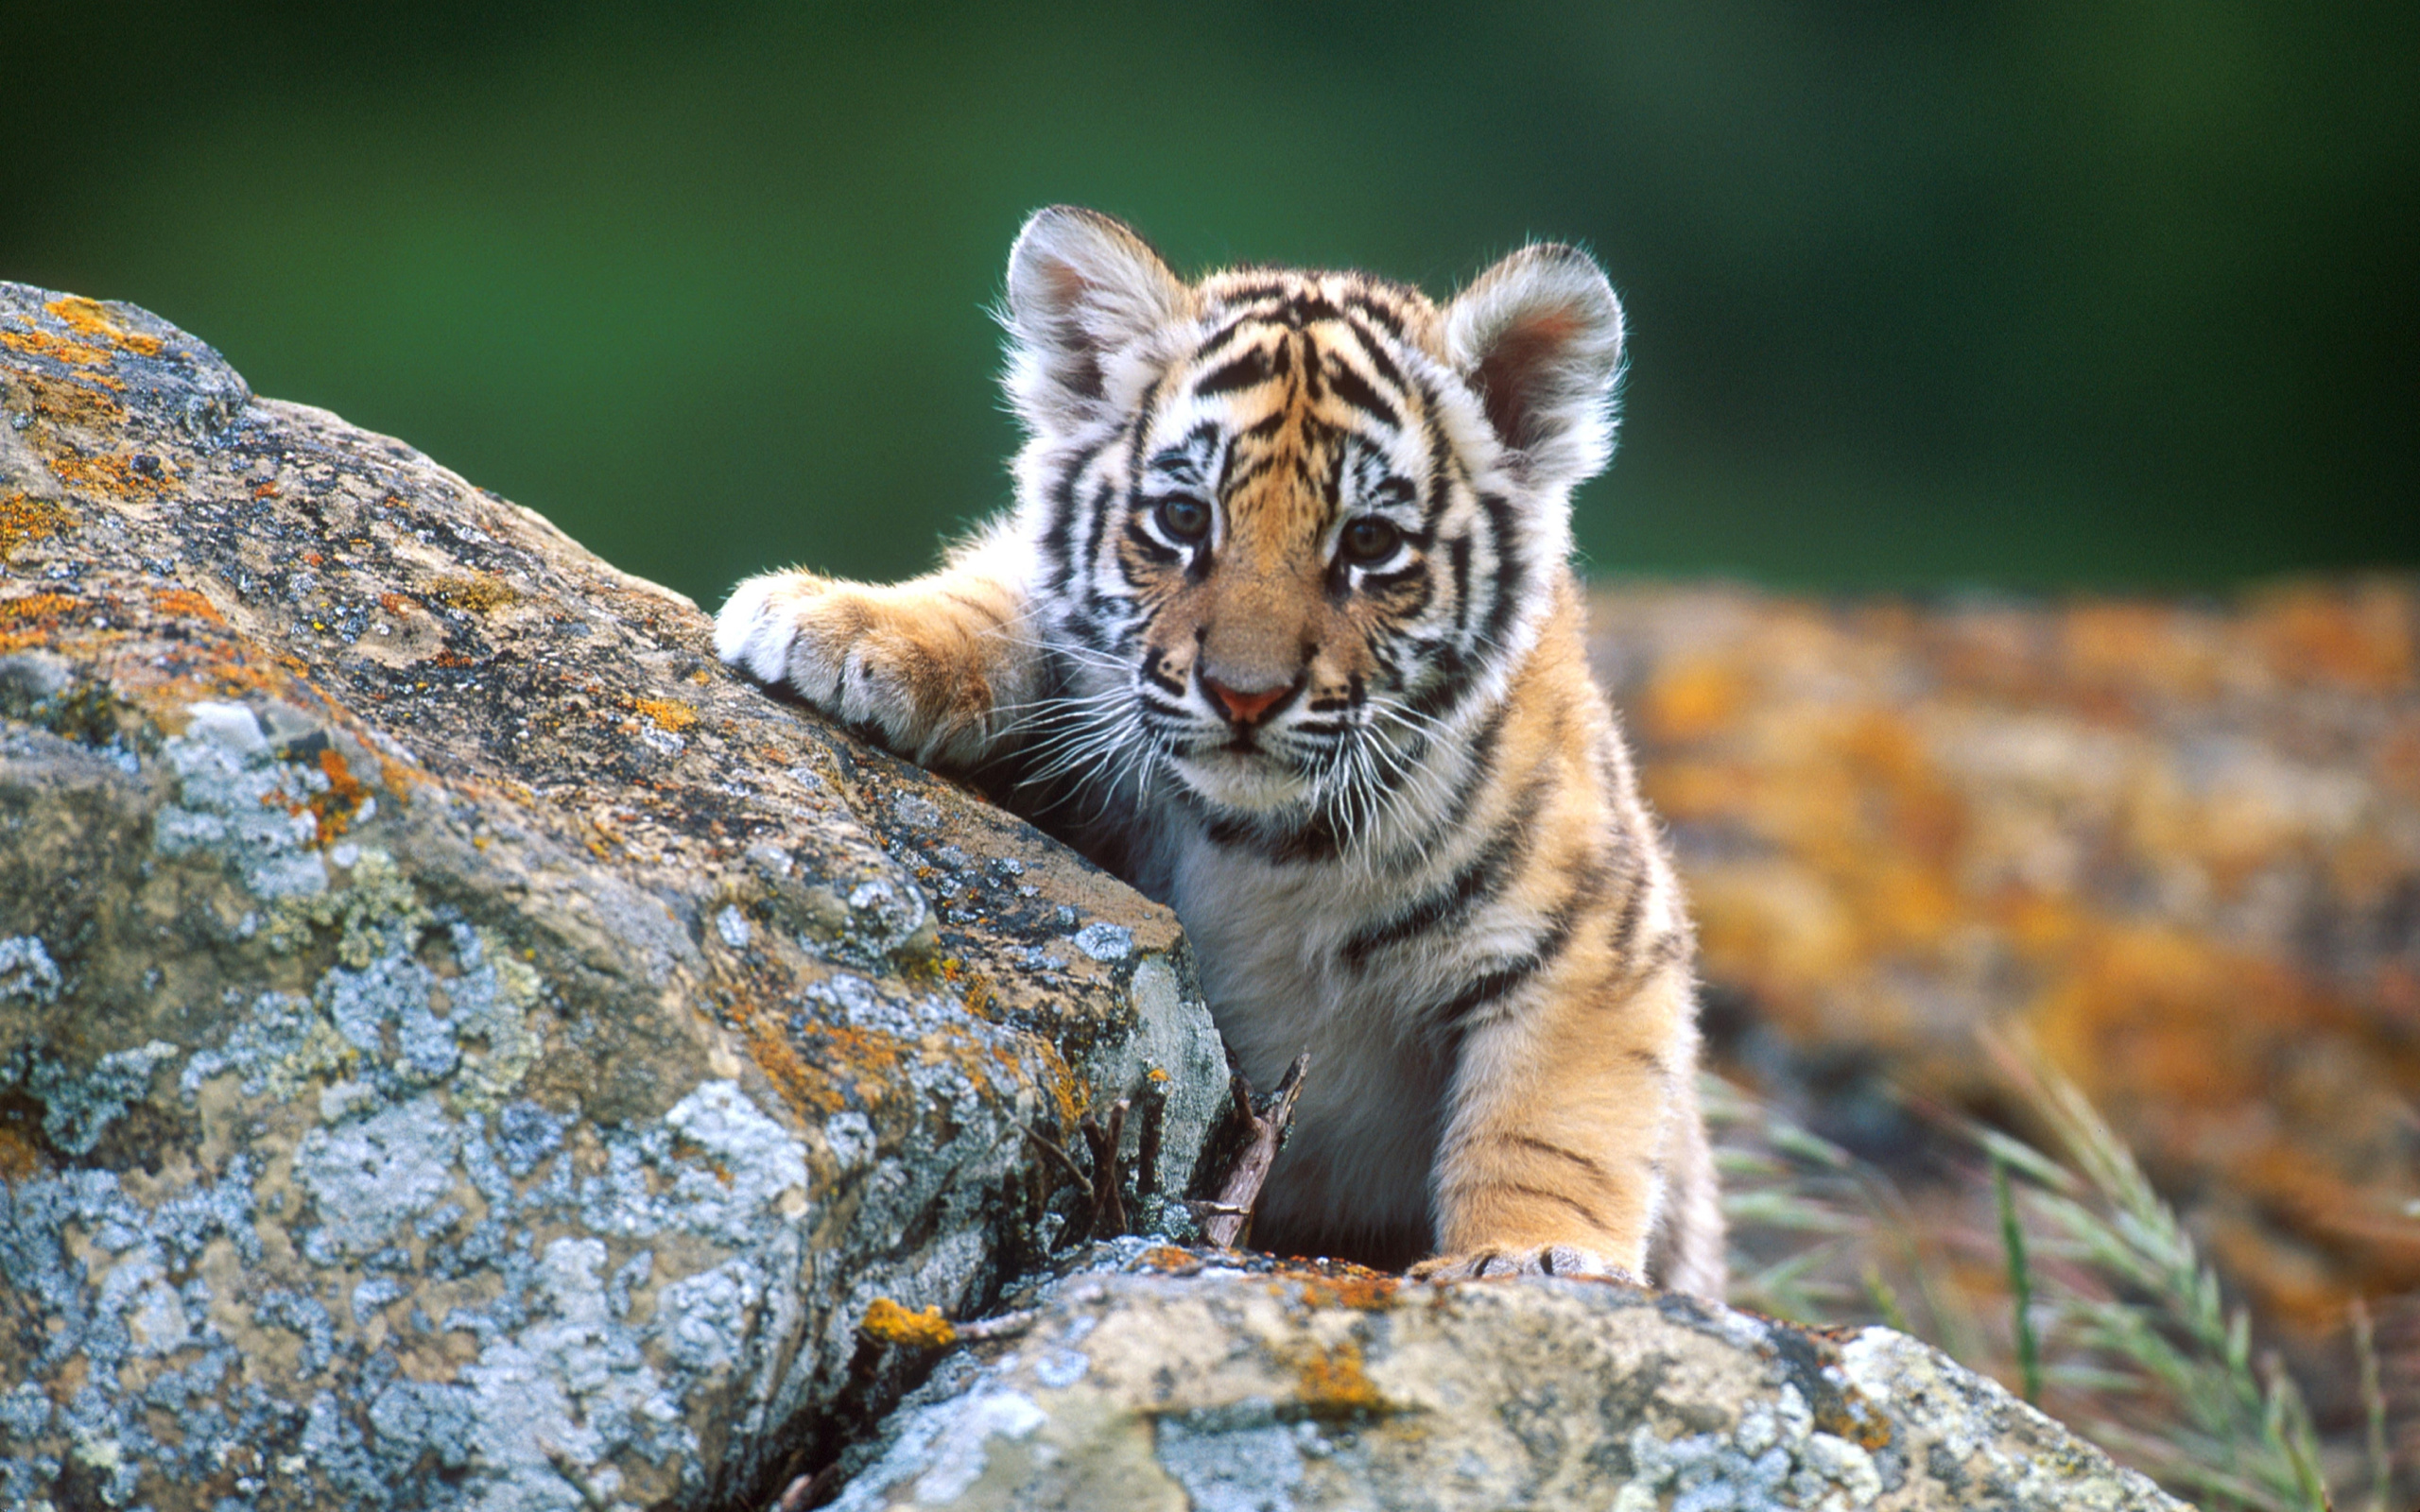 Little Tiger Res: 2560x1600 / Size:1677kb. Views: 106200